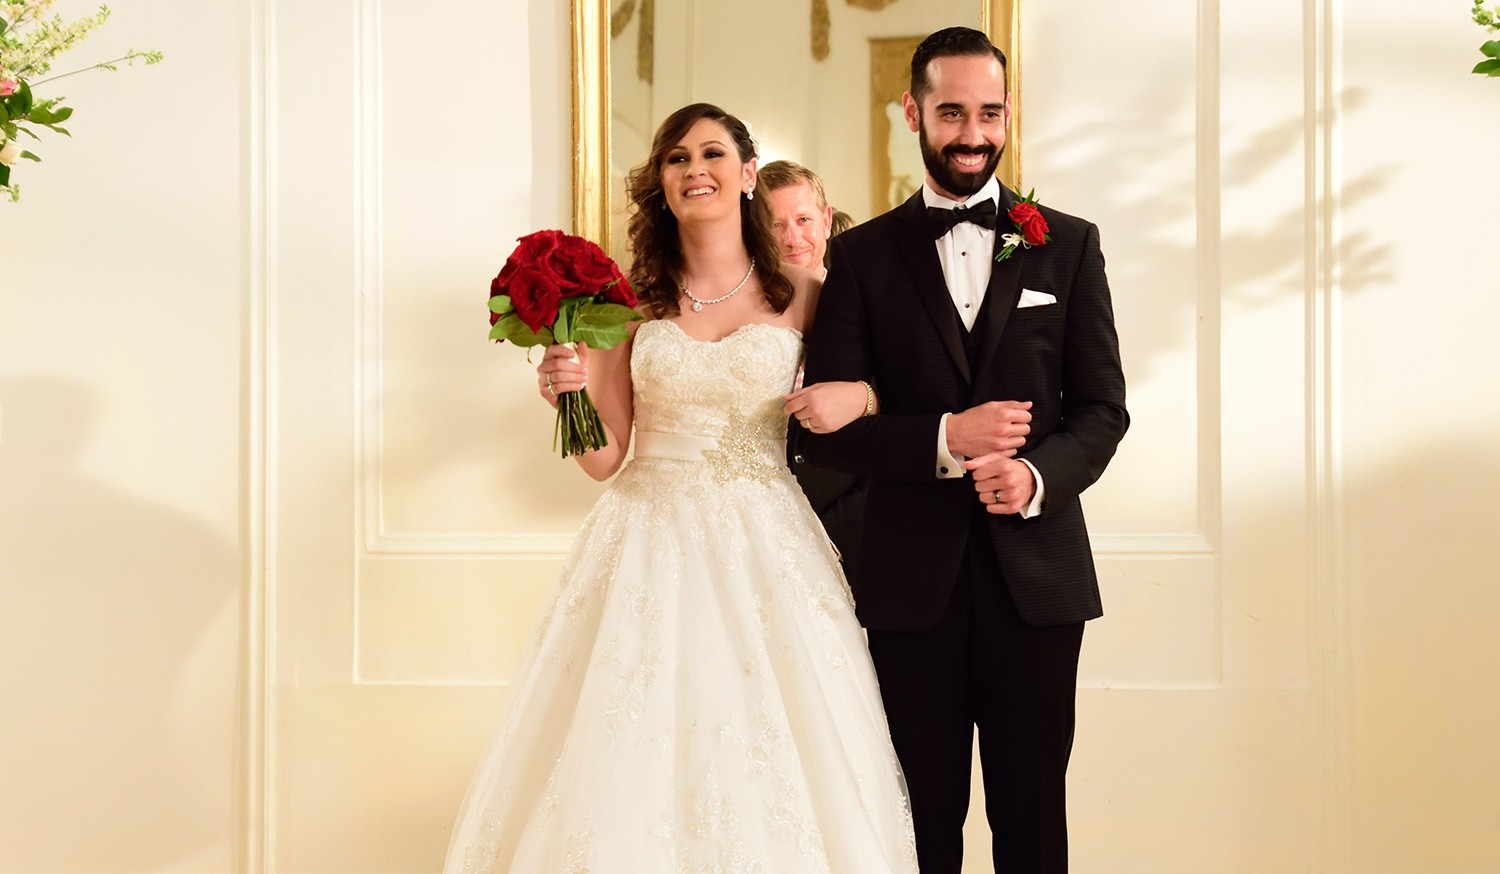 Married at First Sight's Sam and Neil's wedding